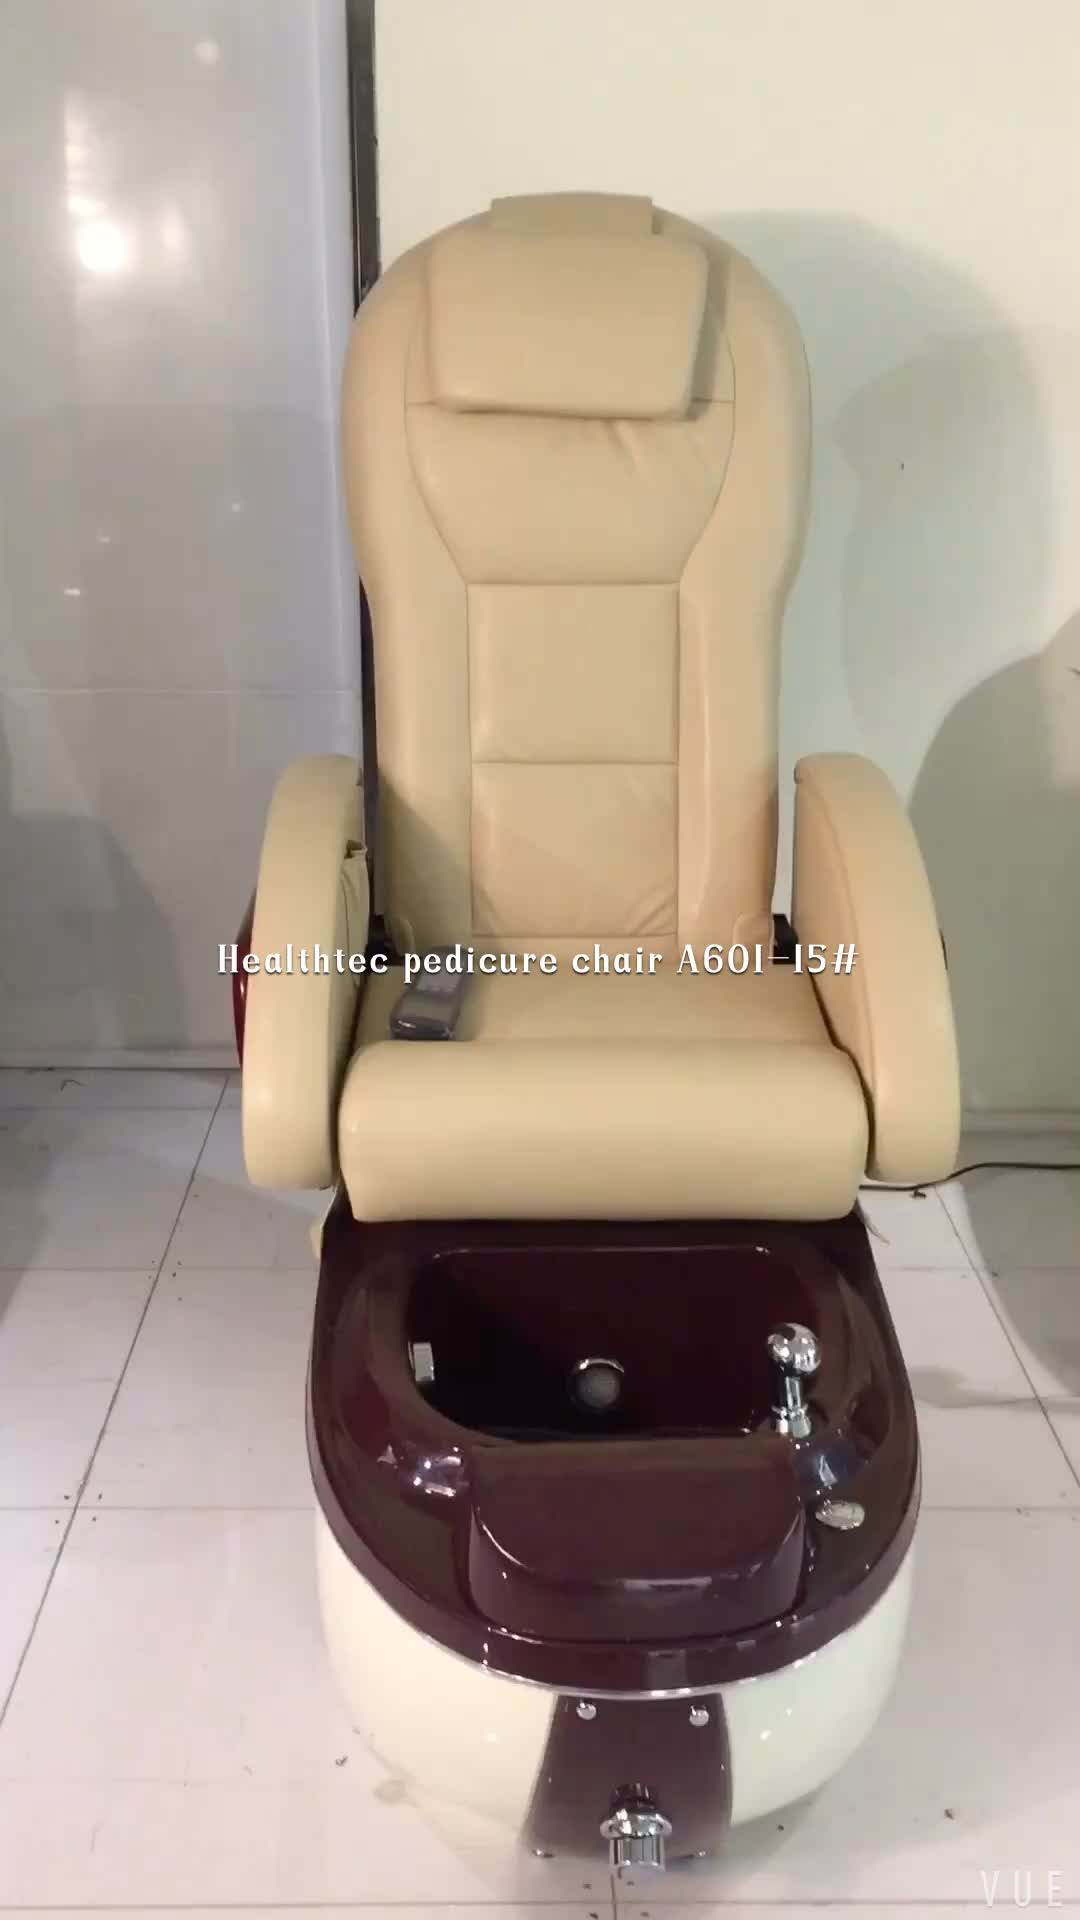 Pipeless Pedicure Chairs Pipeless Jet Chair For Rimming Pedicure Chair Leather